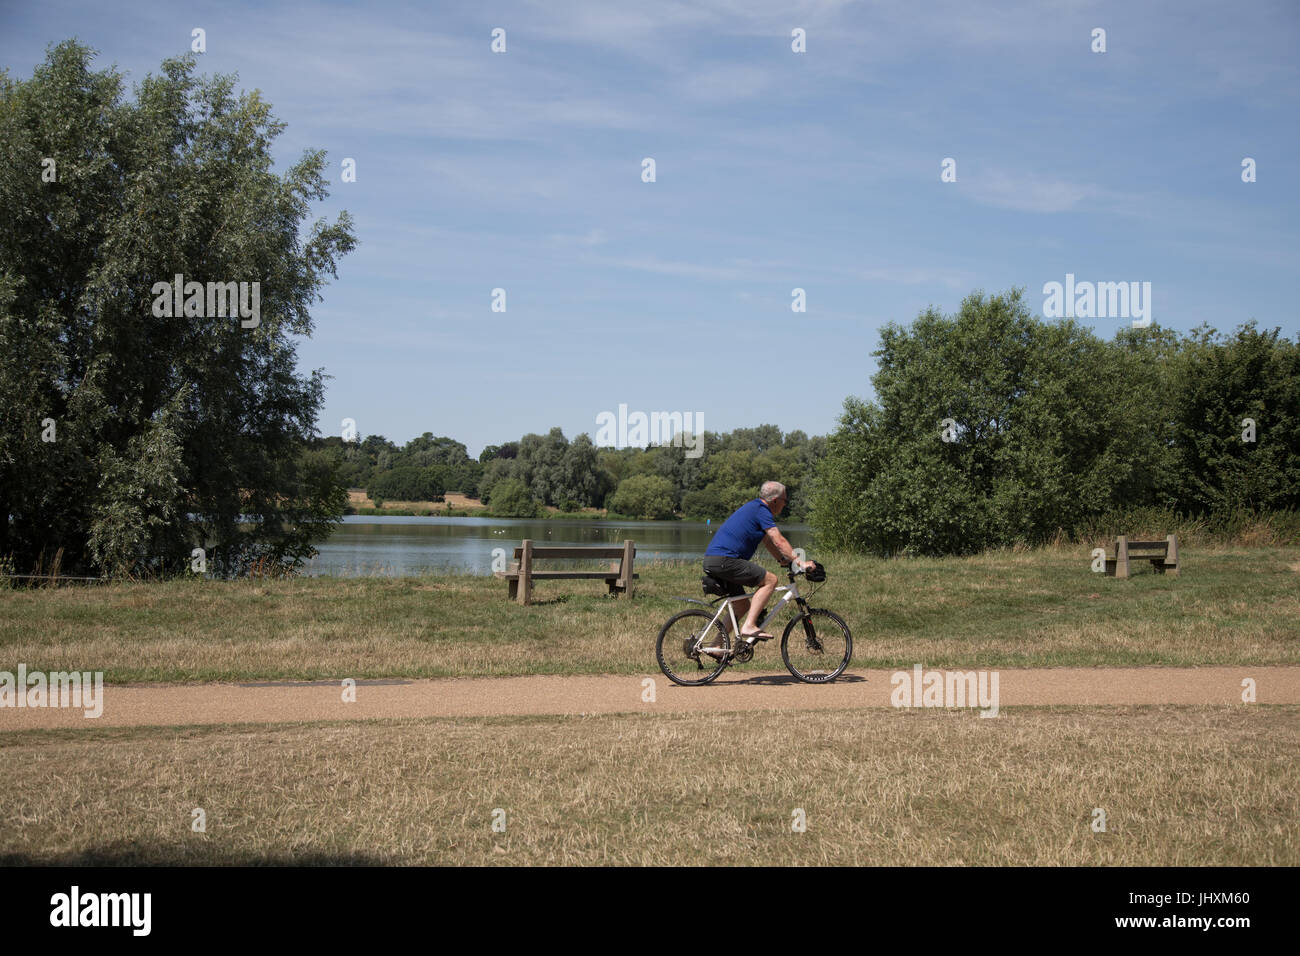 Ferry Meadows country park, Peterborough, UK. 17th July 2017. UK ...